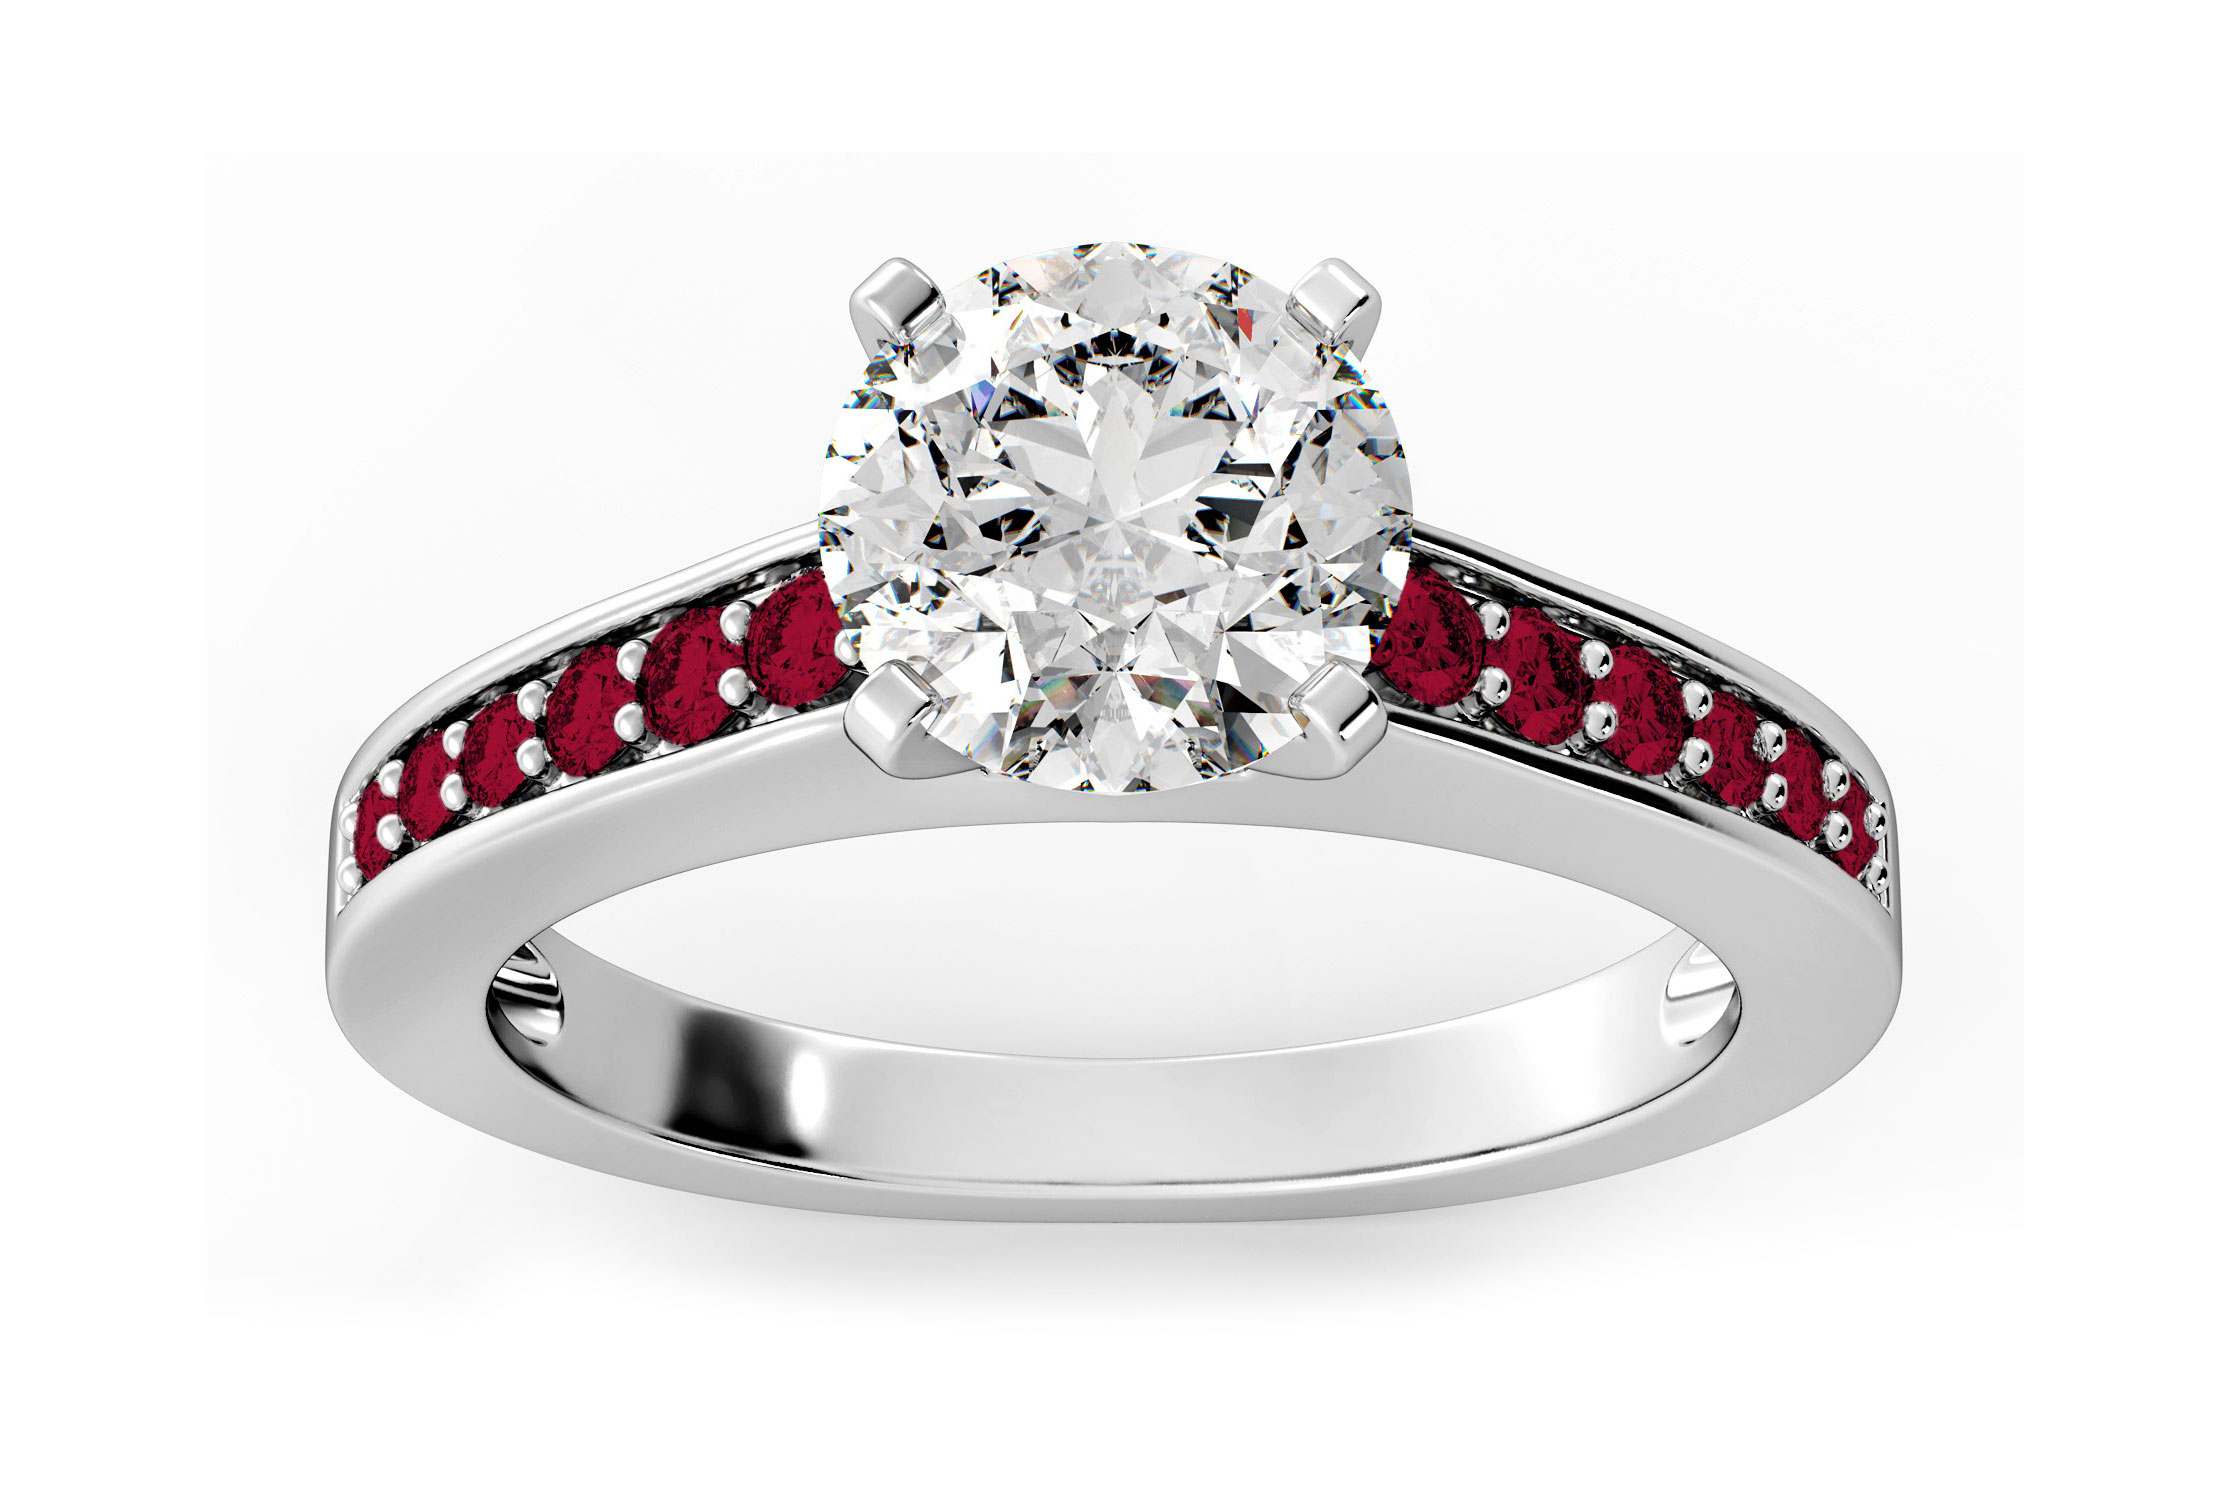 band forevermark diamond multiple jeweler rings signature jewelry ben bridge engagement